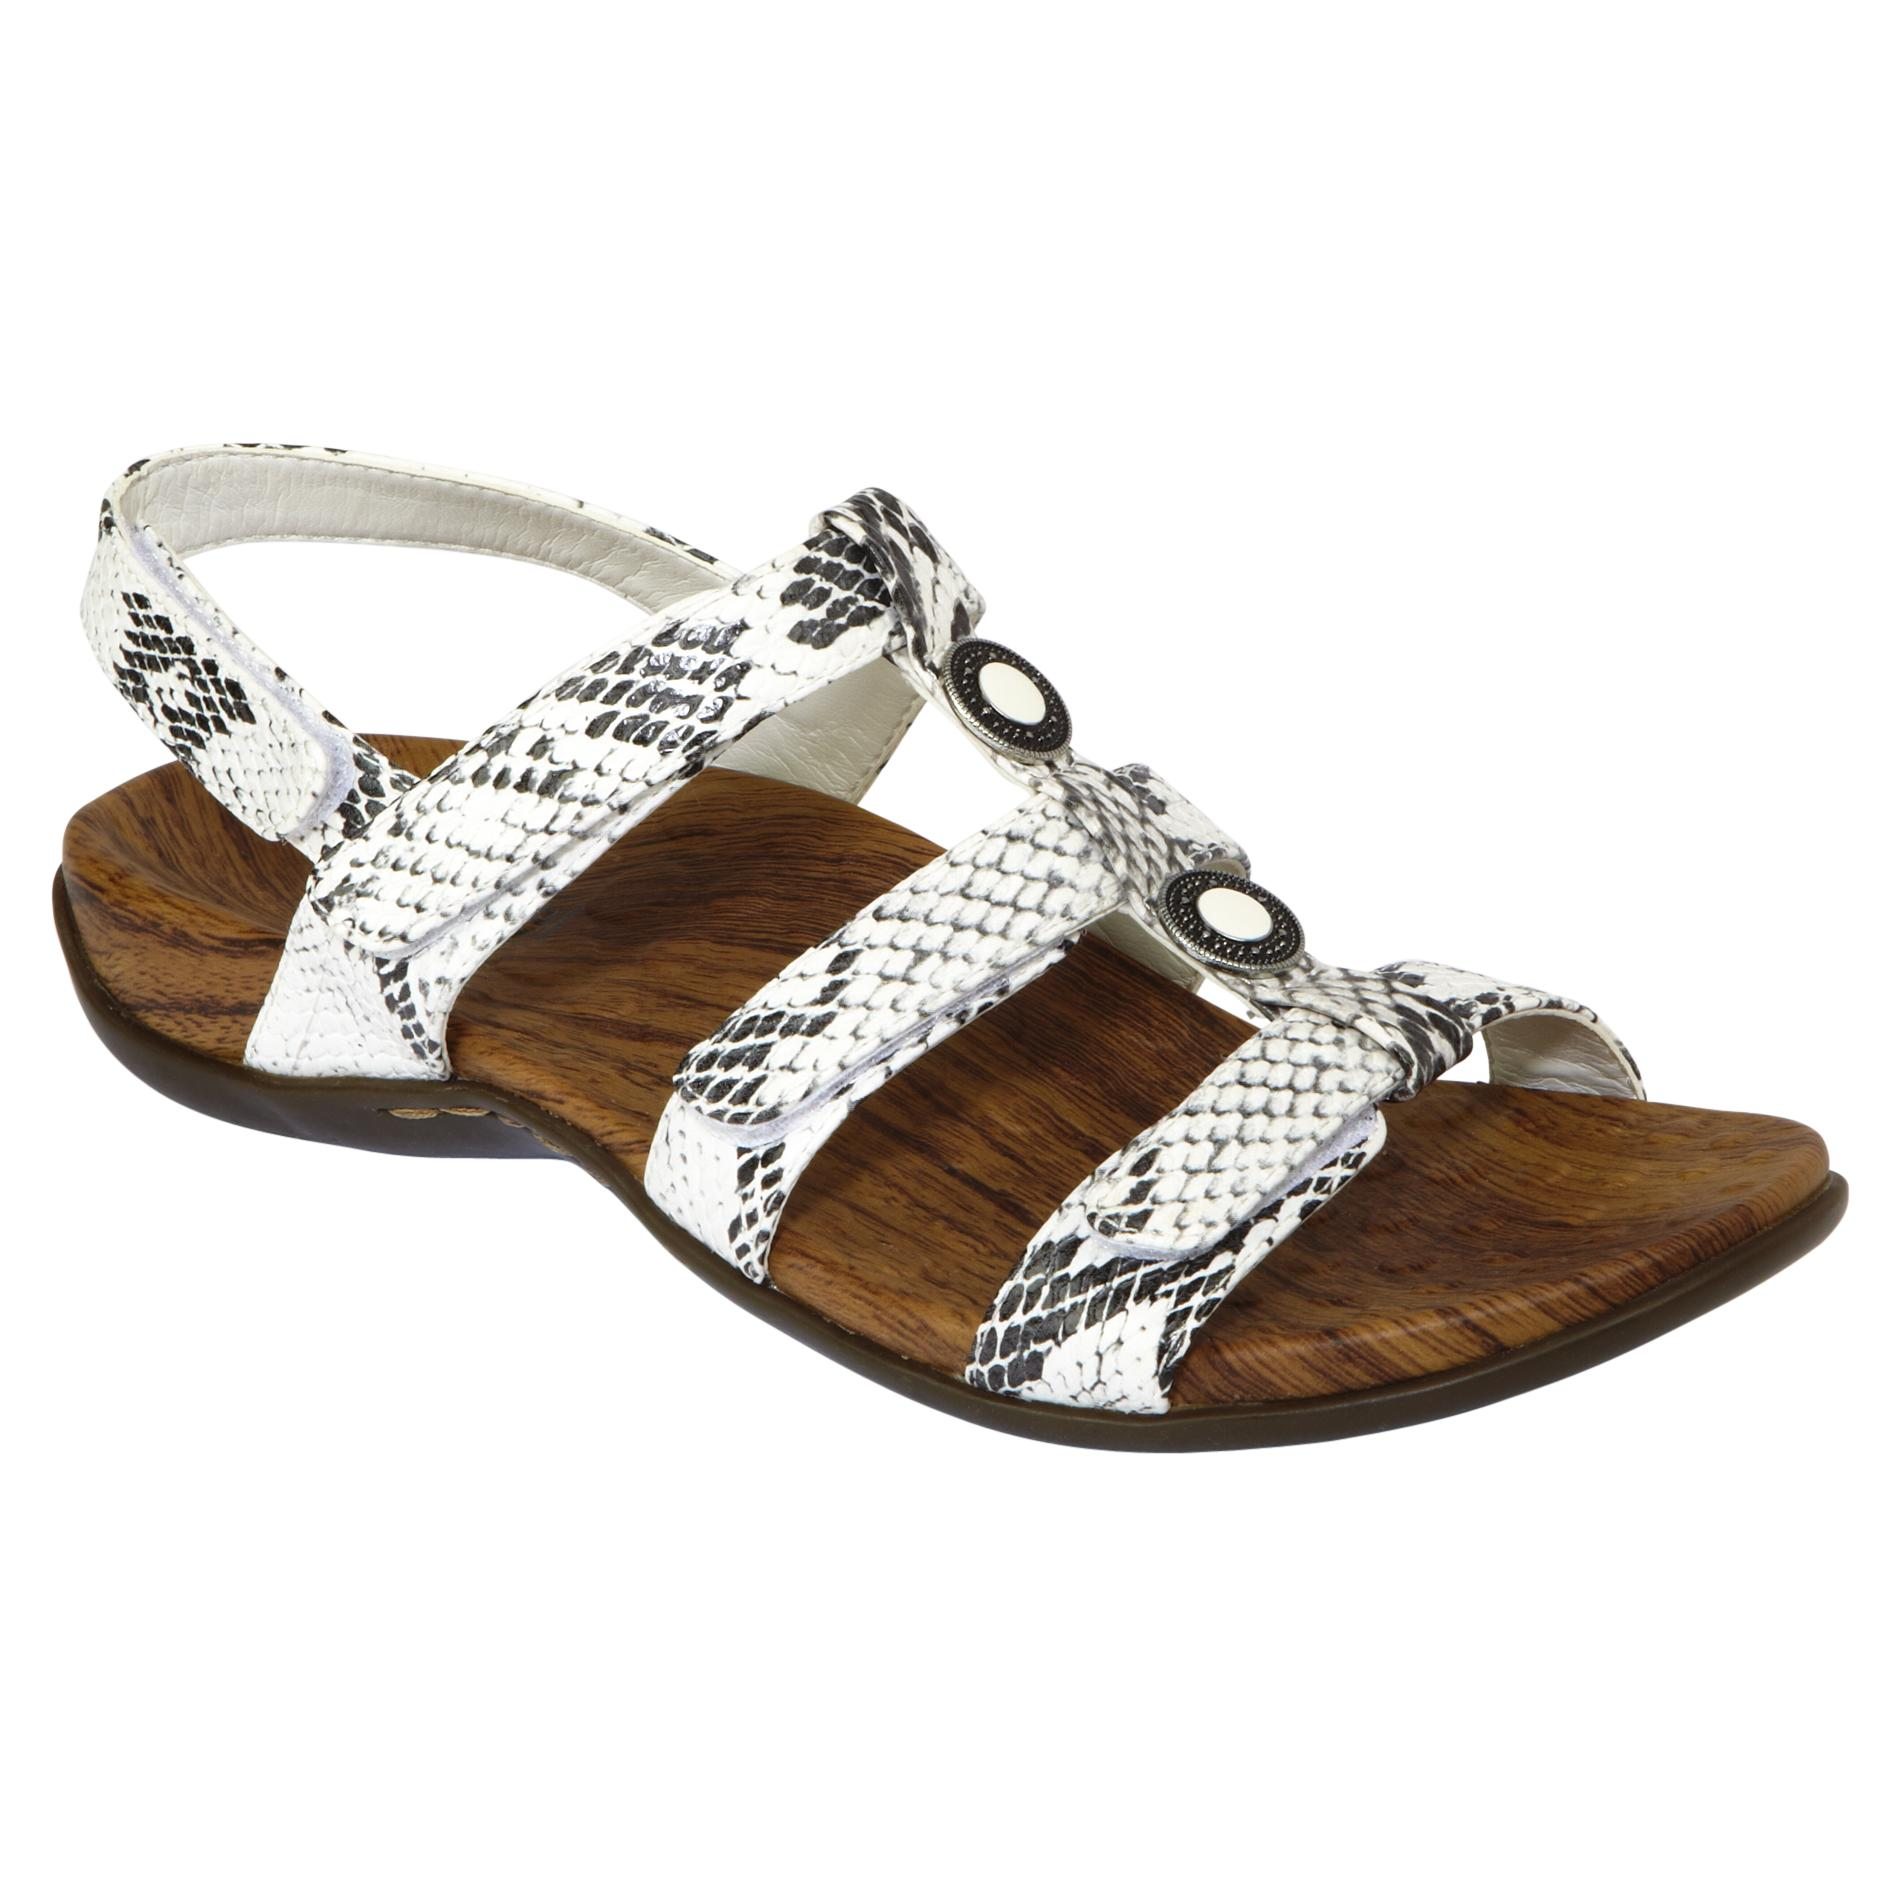 Women's Sandal - YASMIN II - Neutral